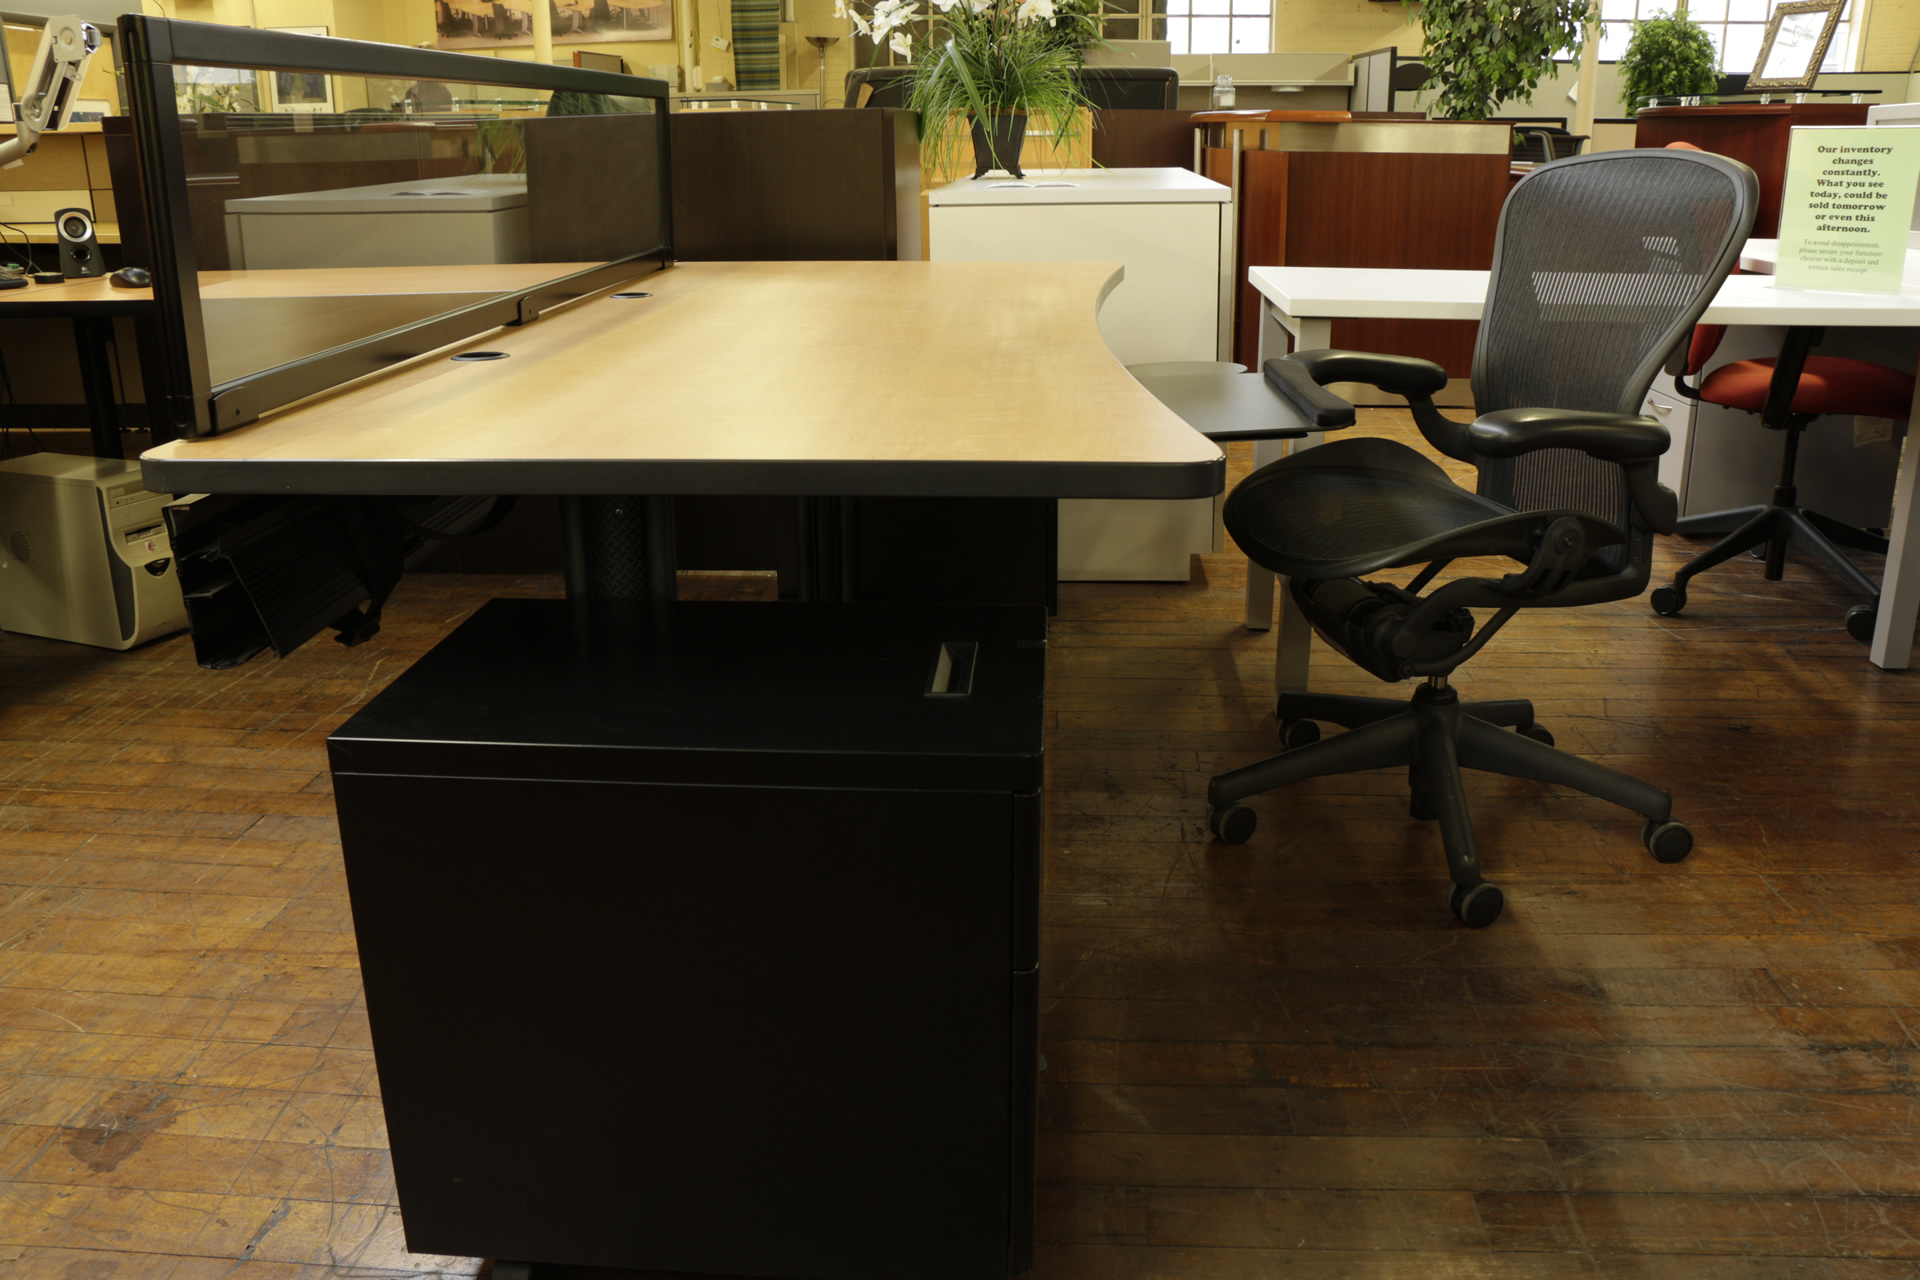 peartreeofficefurniture_peartreeofficefurniture_mg_1856.jpg